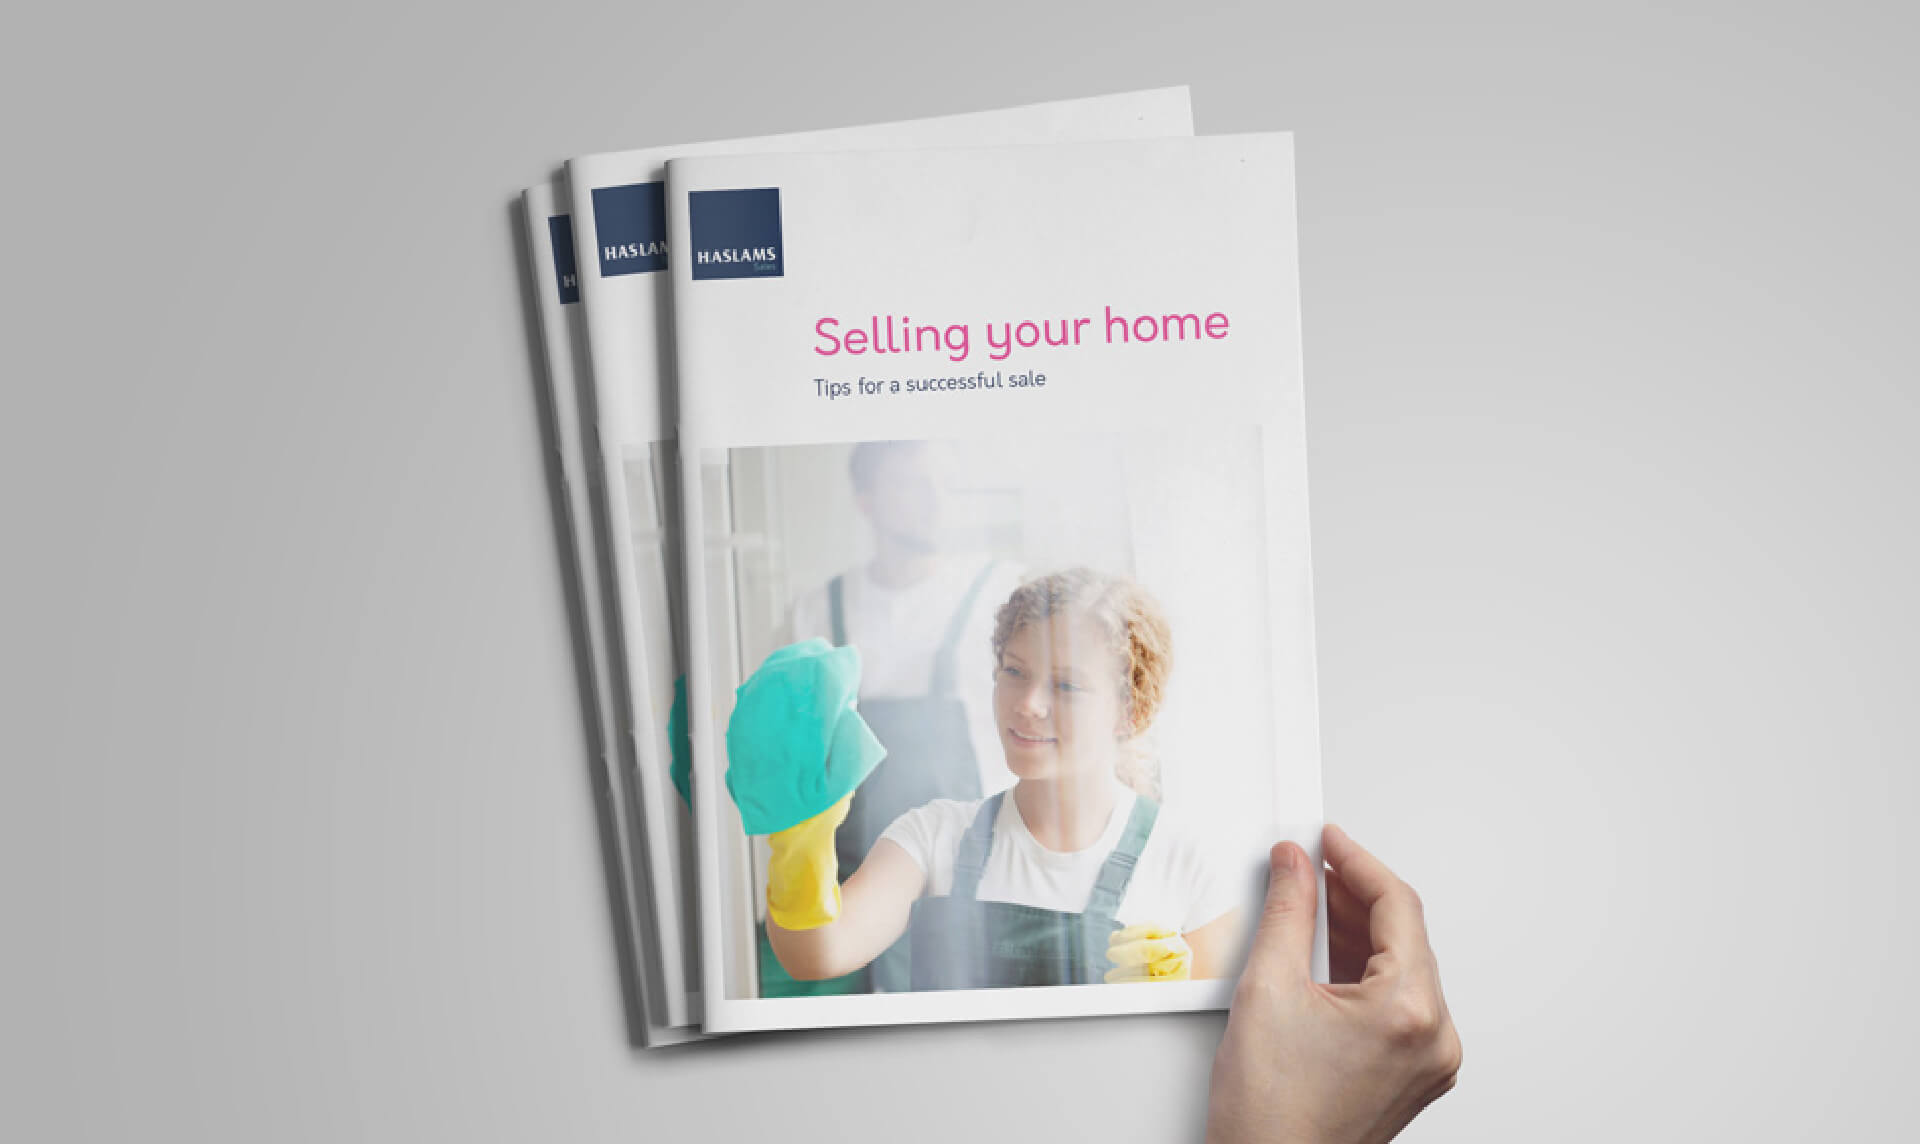 Haslams Selling your home guide